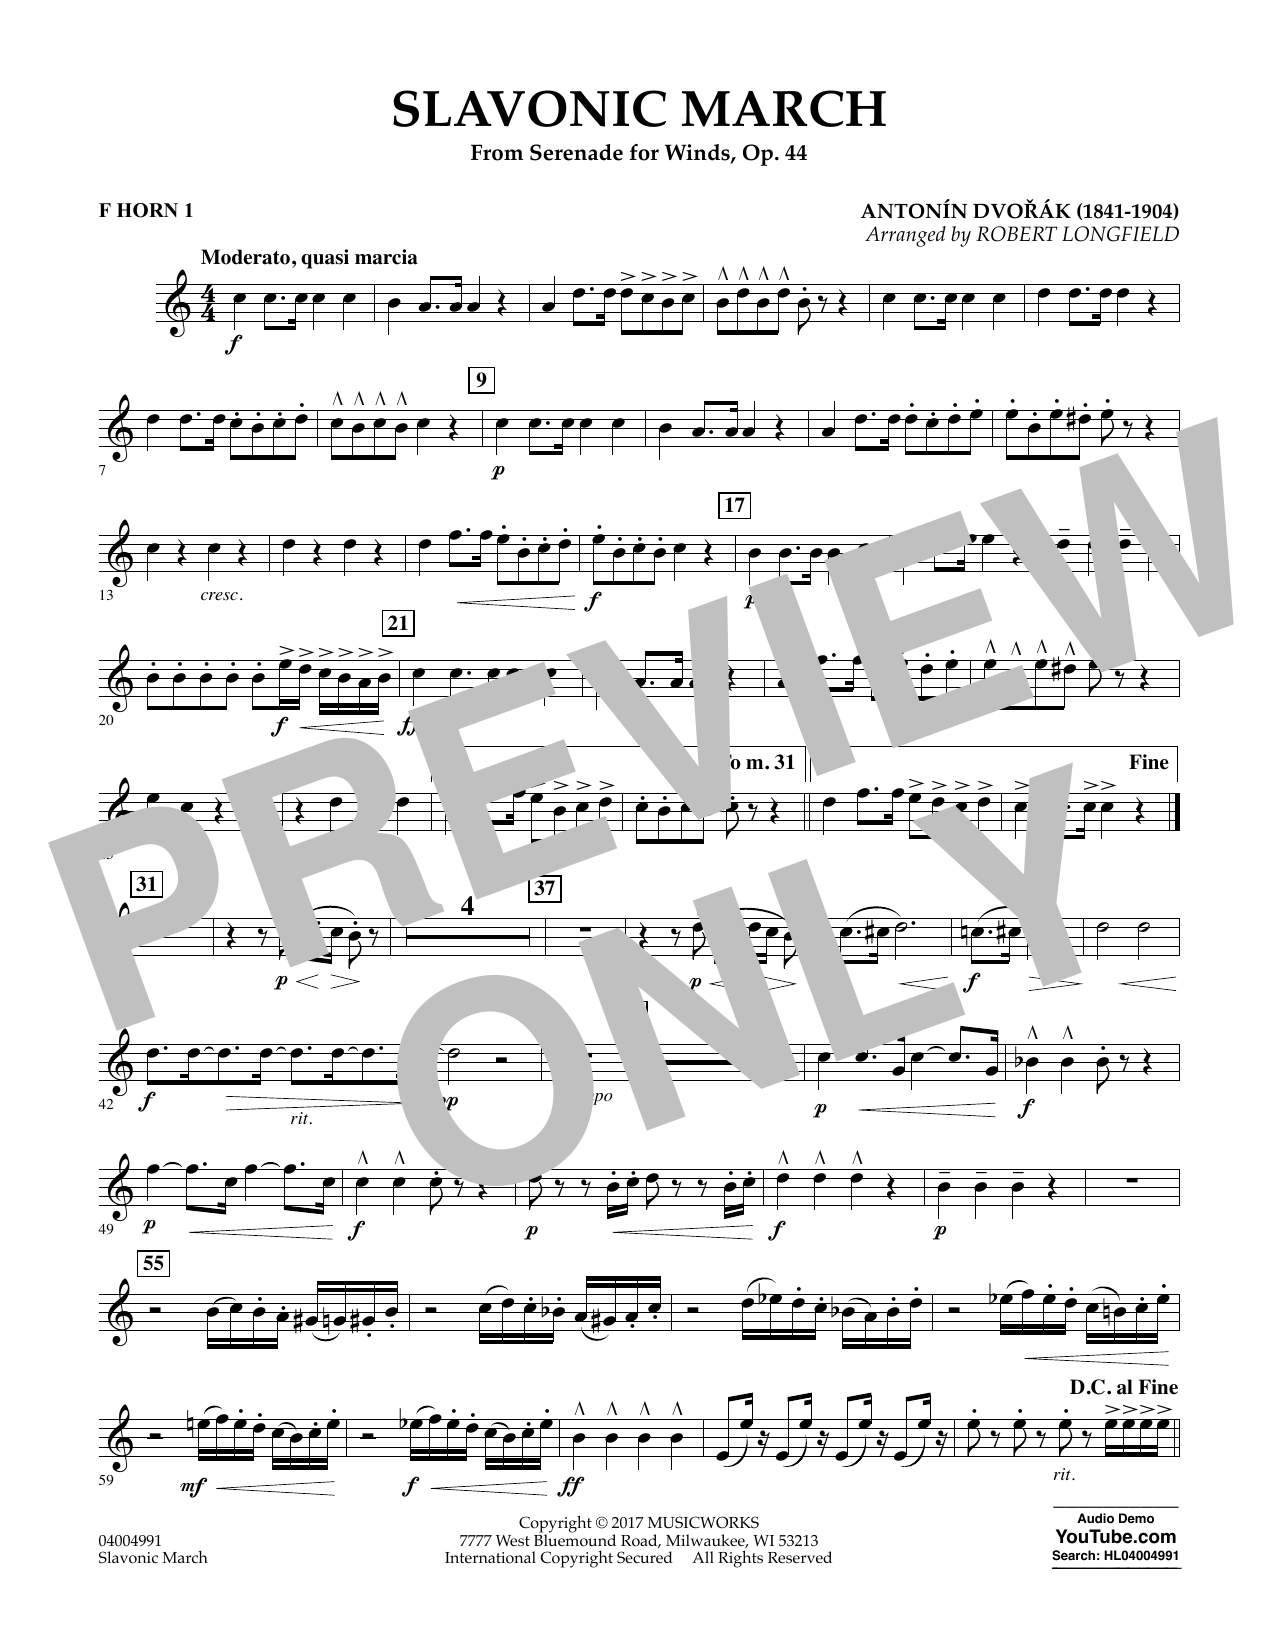 Slavonic March (from Serenade for Winds, Op. 44) - F Horn 1 Sheet Music